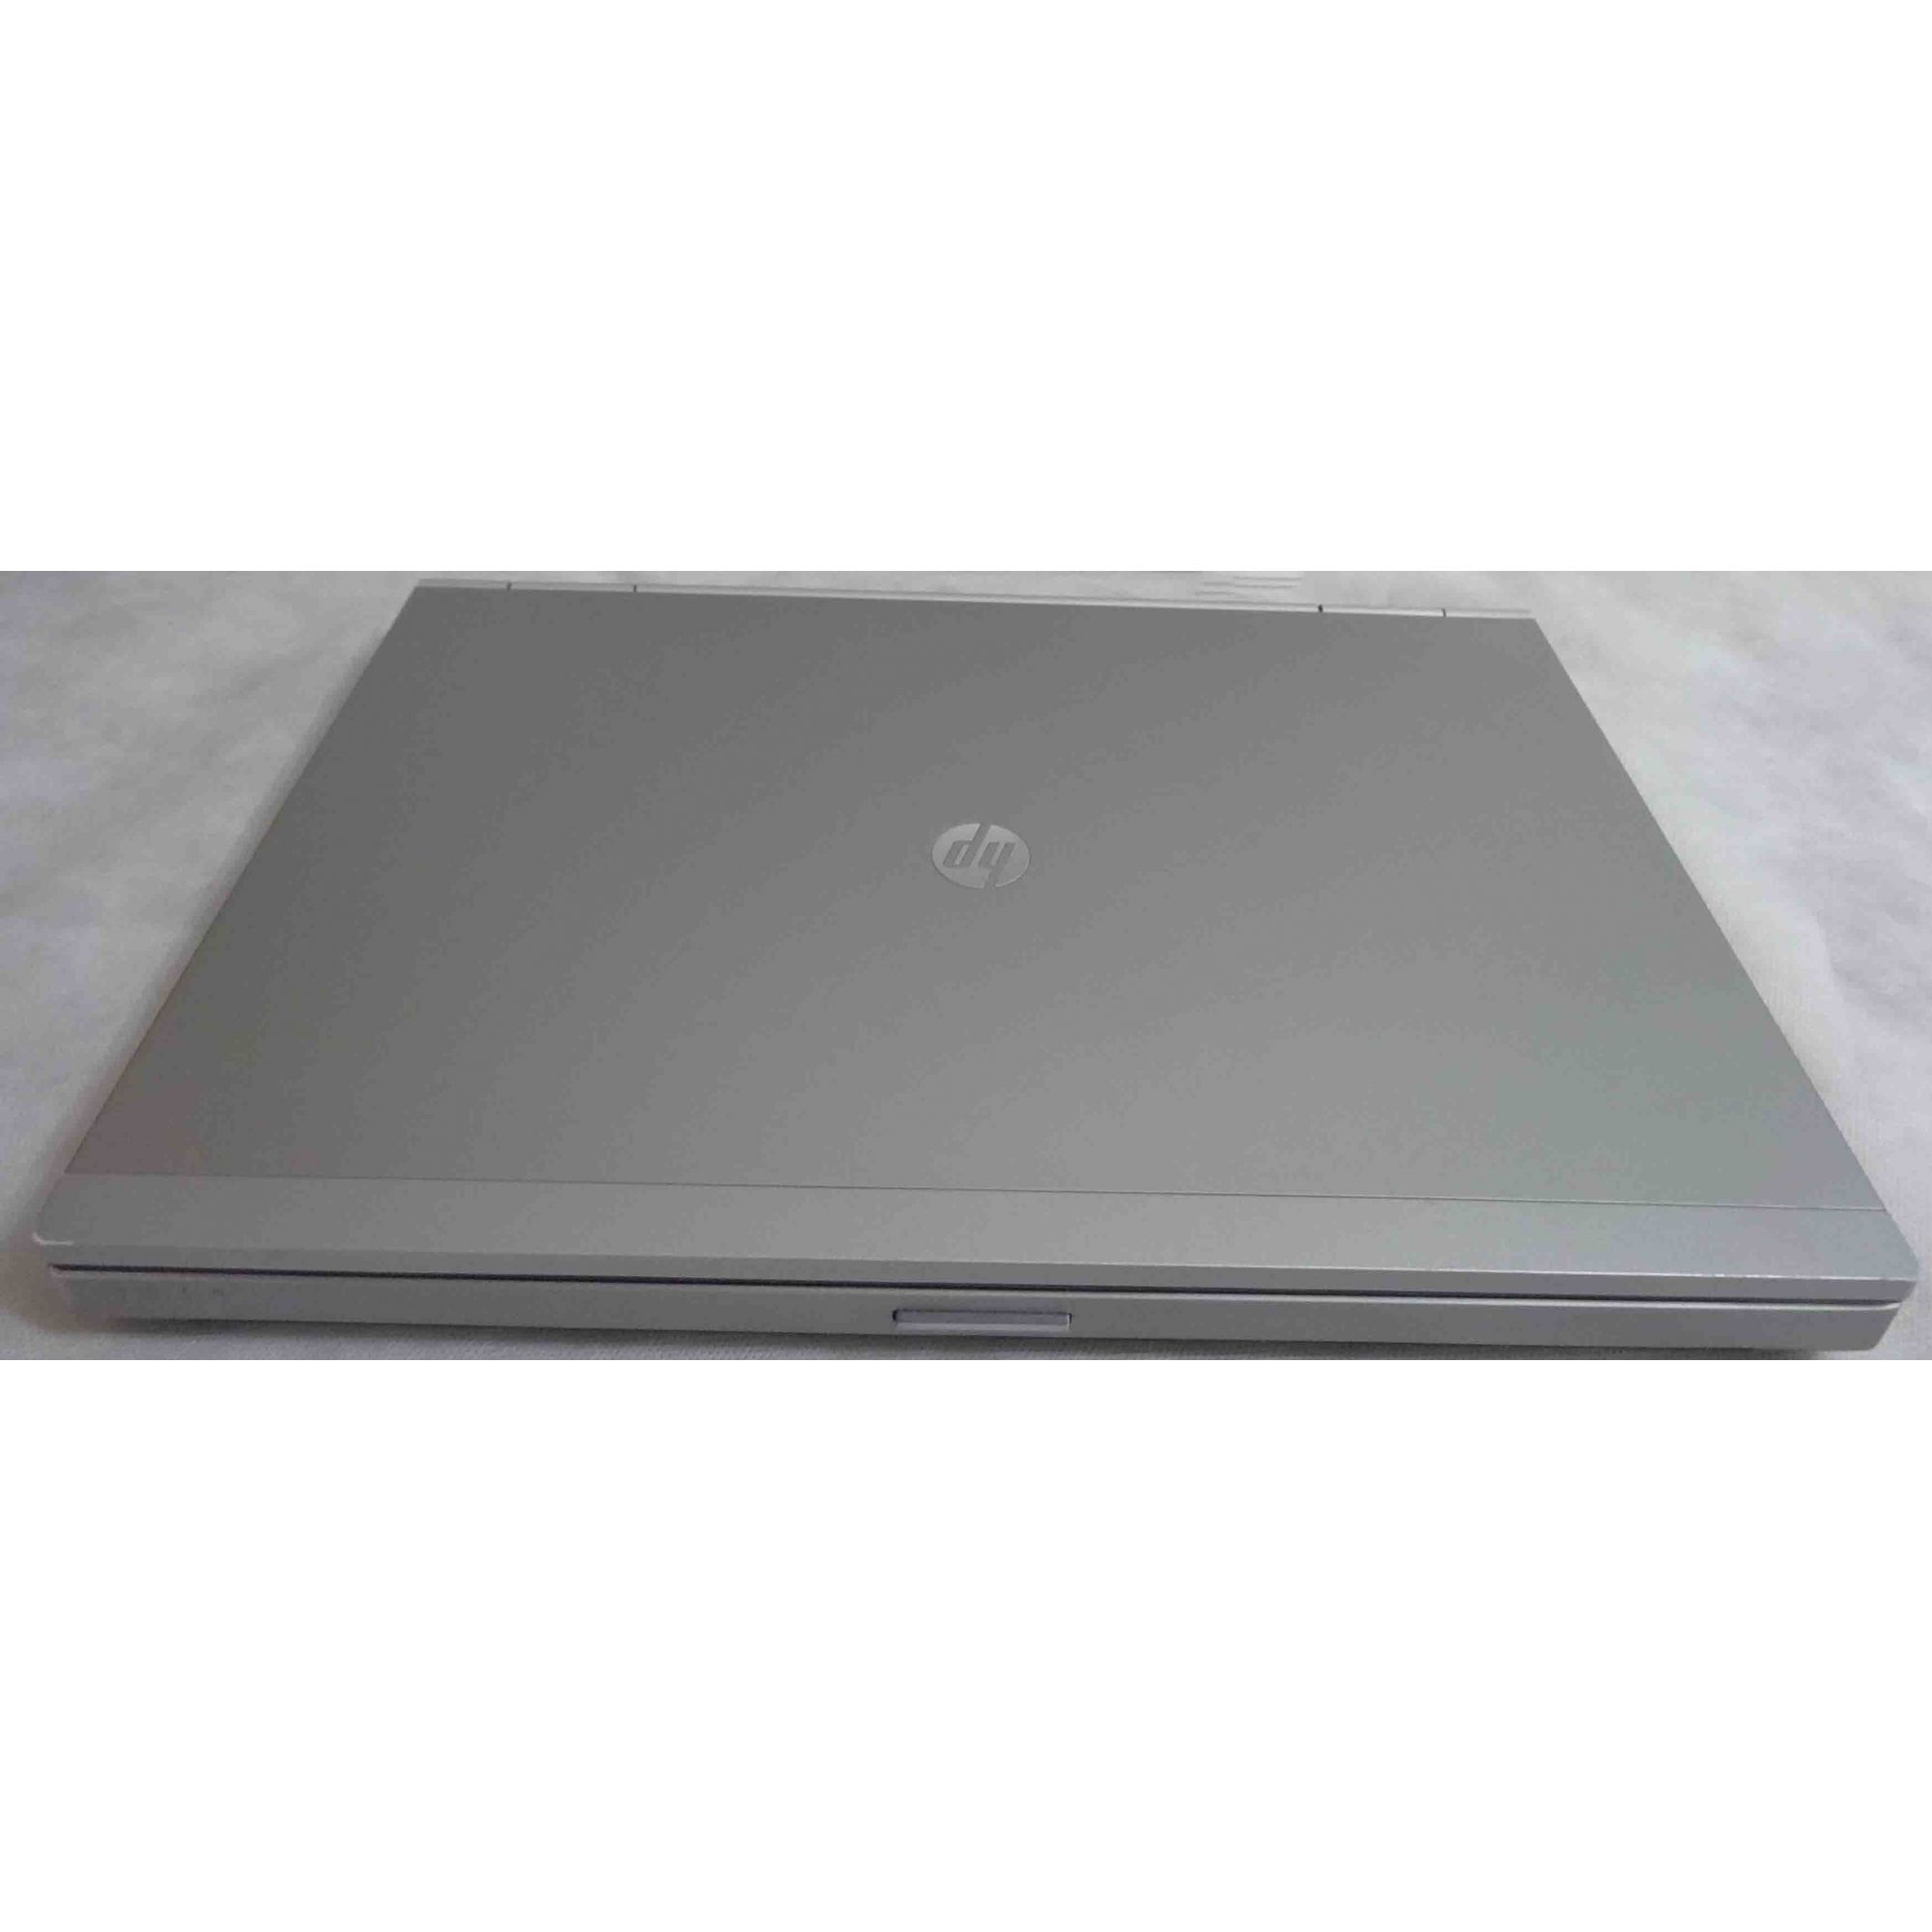 Notebook HP Elitebook 8470p 14'' Intel Core i5 2.9GHz 4GB HD-500GB